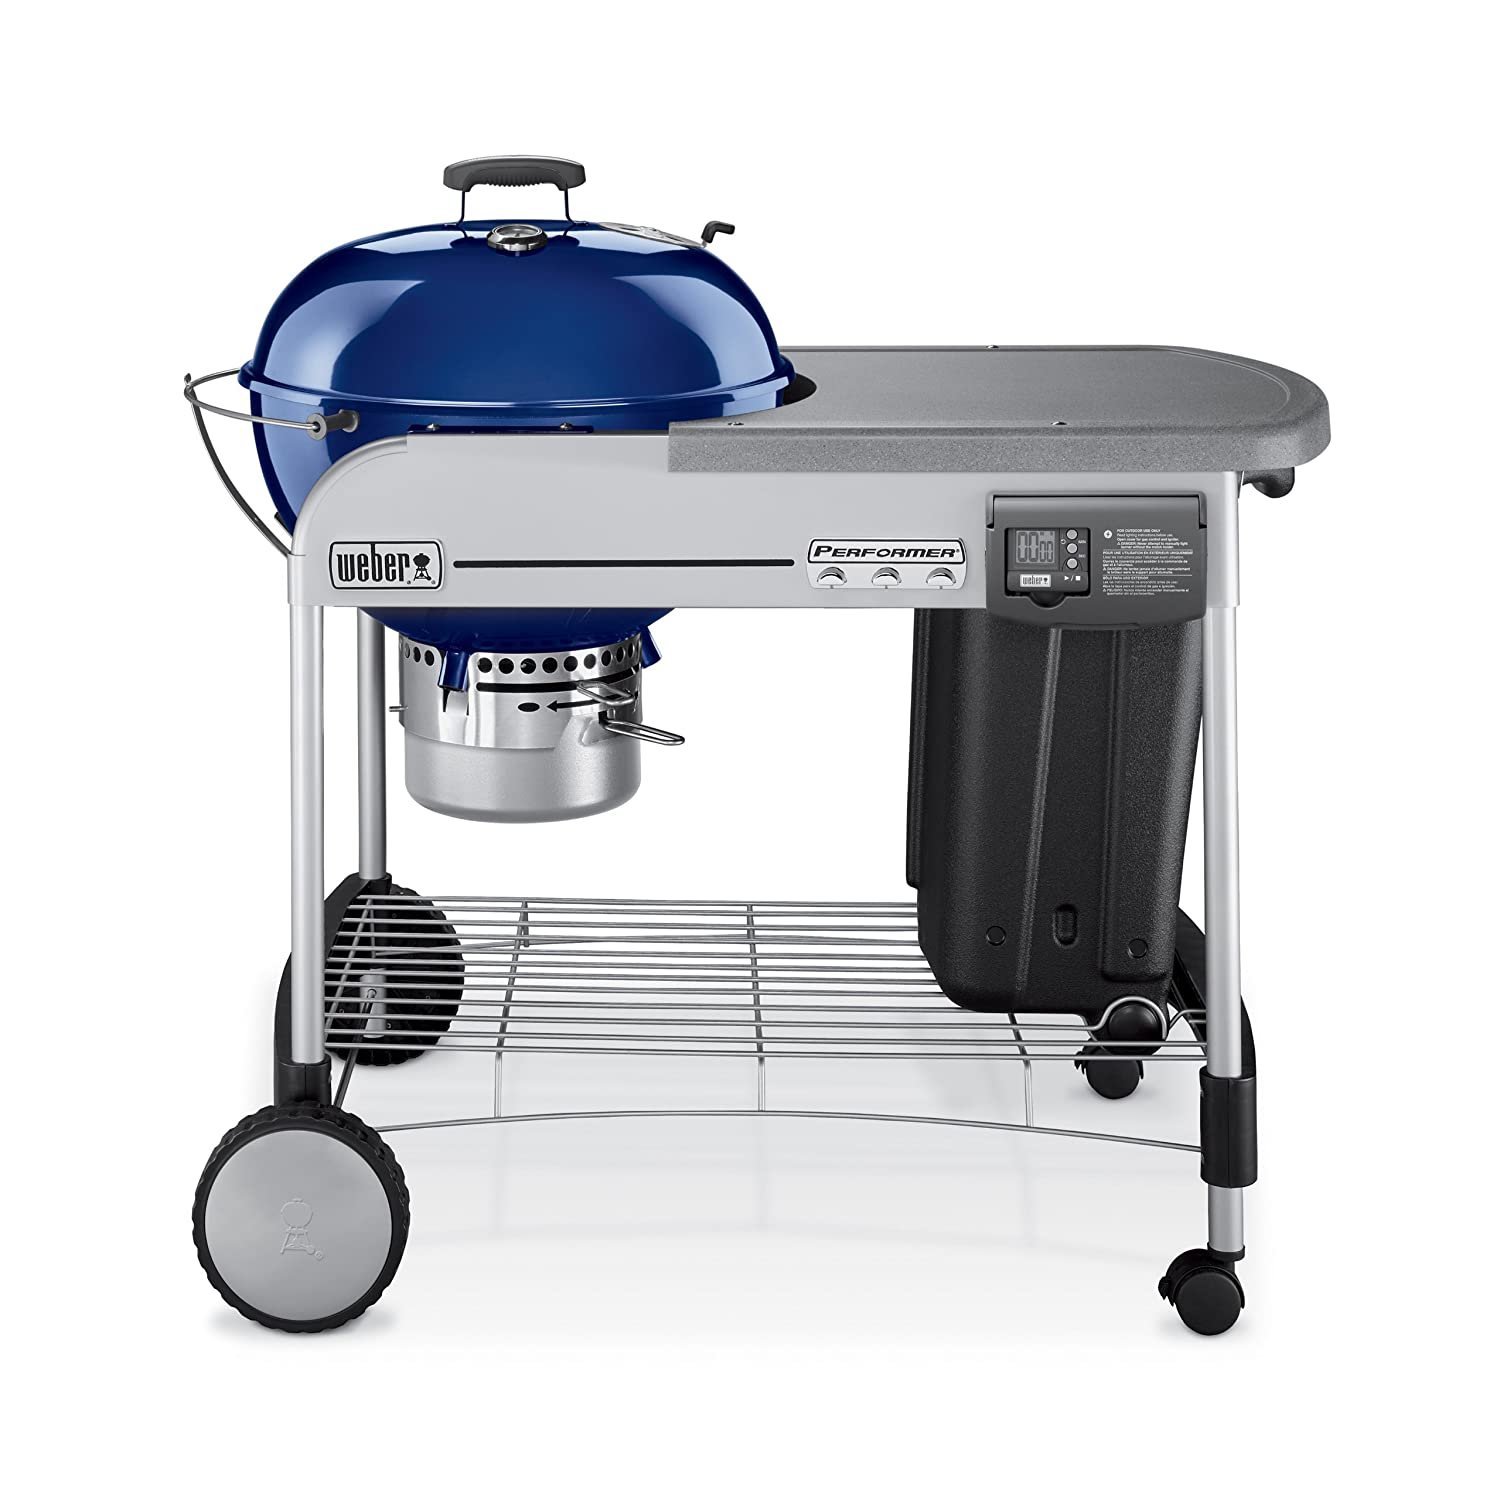 Weber 1488001 Performer Platinum Charcoal BBQ Outdoor Grill in Blue Green at Sears.com